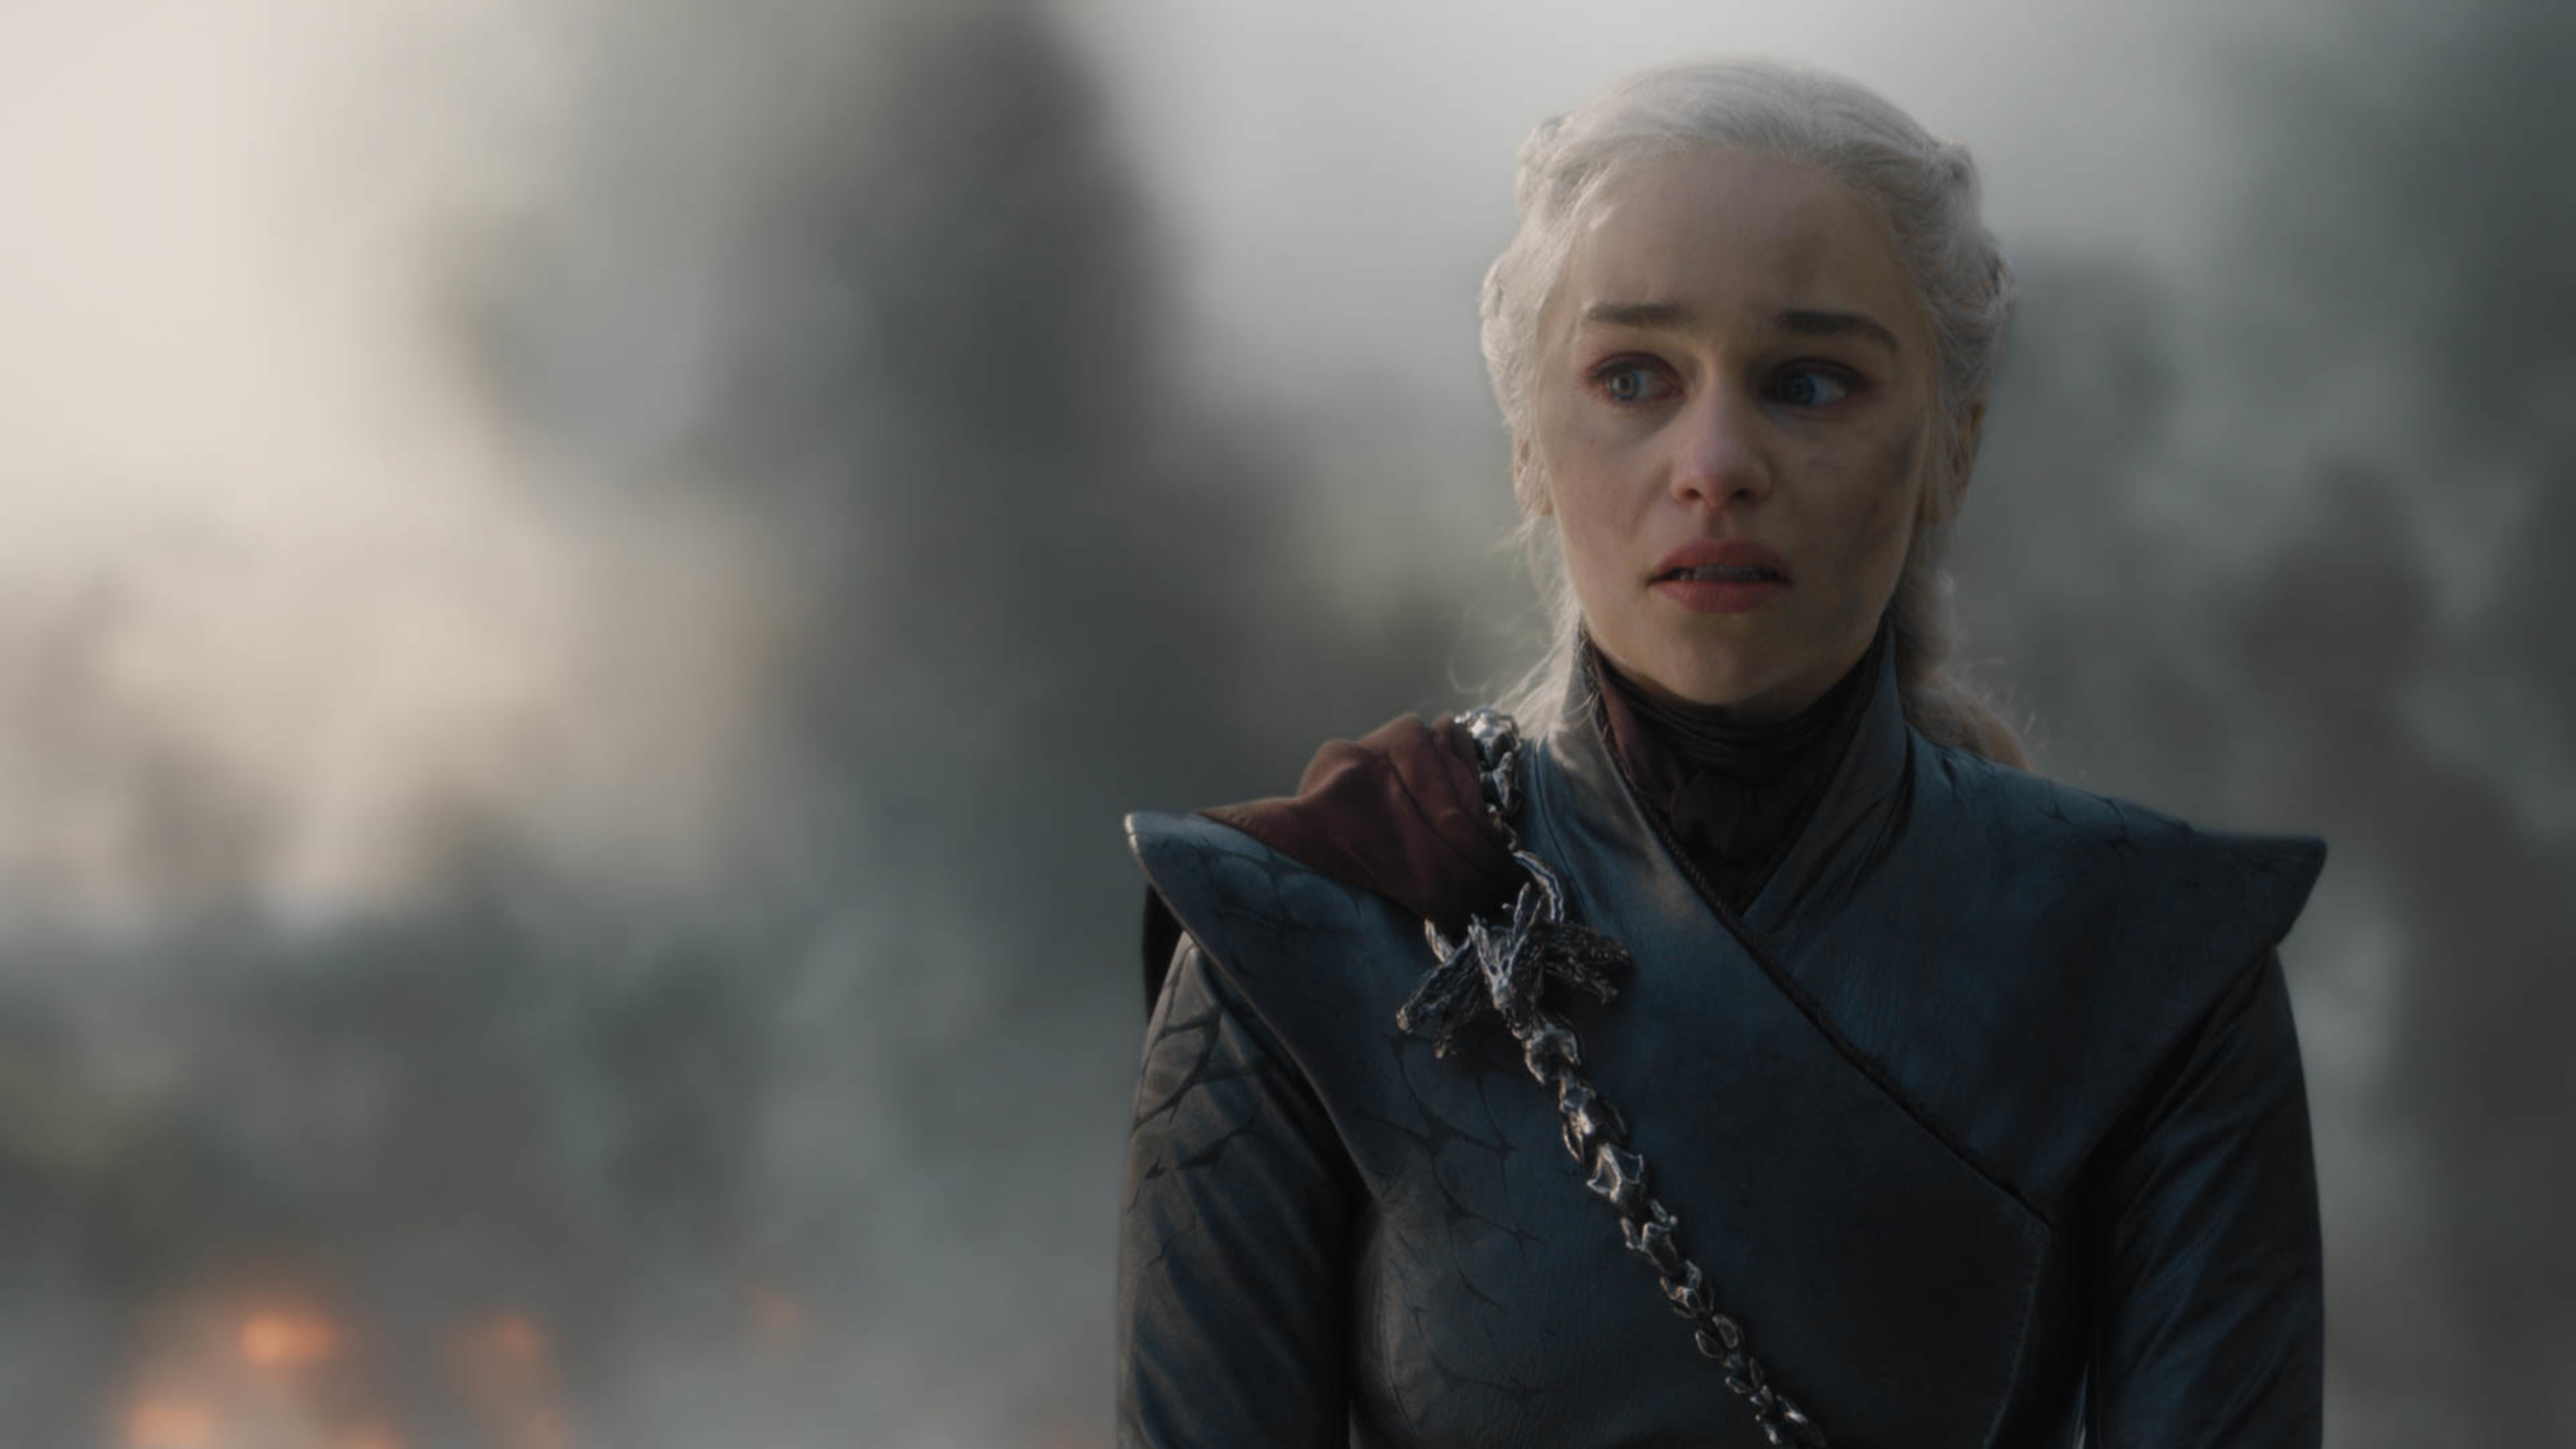 Yes, the Daenerys Targaryen twist in Game Of Thrones was foreshadowed from the very beginning — but it's the poor execution that made it hard to buy